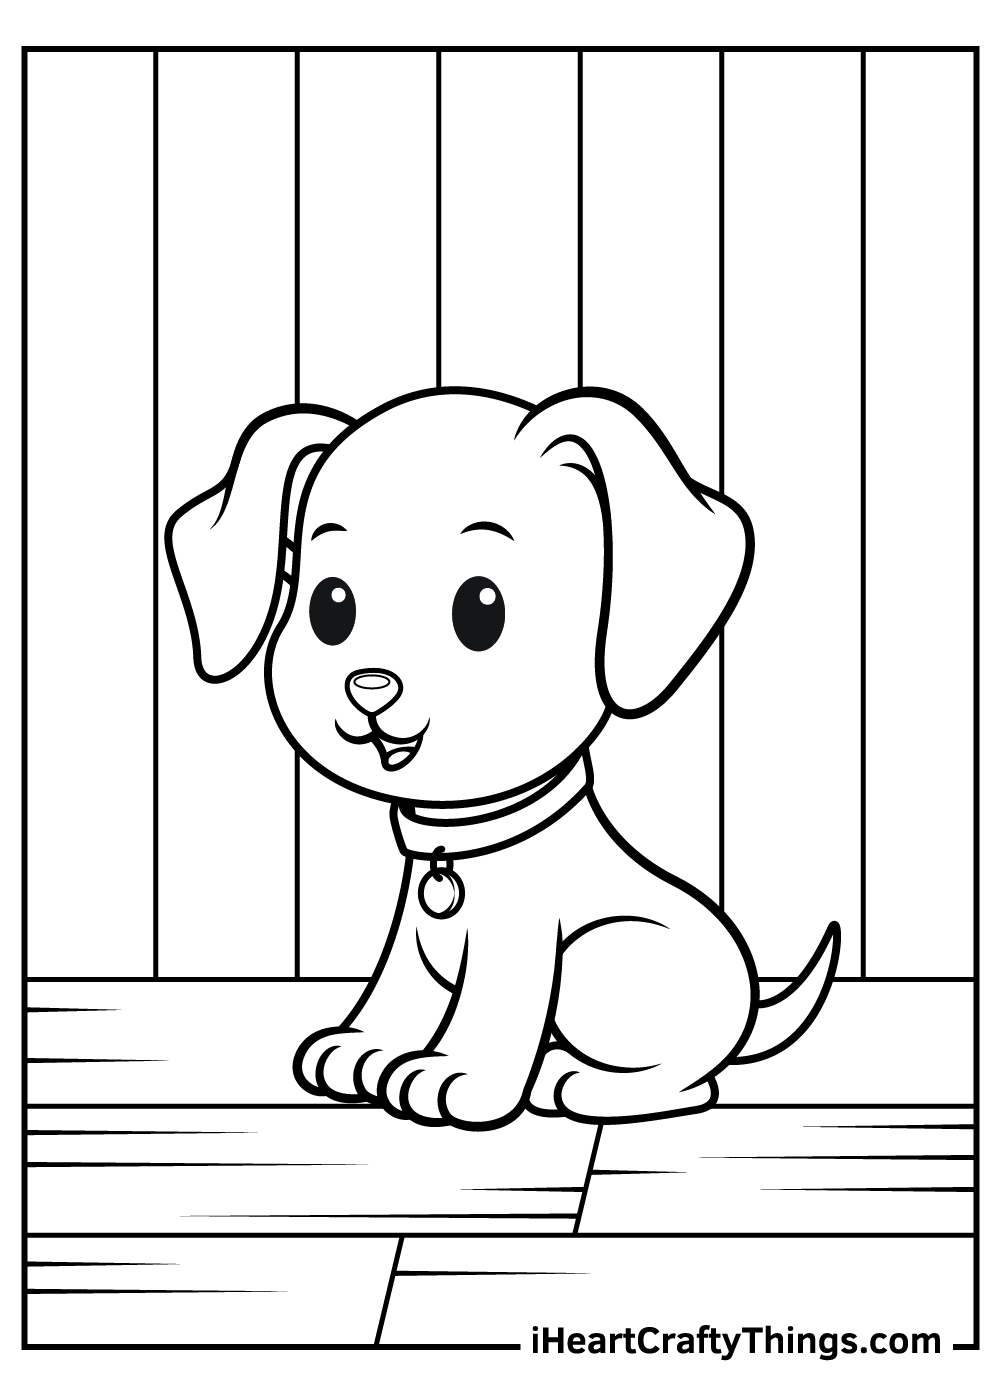 Printable Baby Animals Coloring Pages Updated 2021